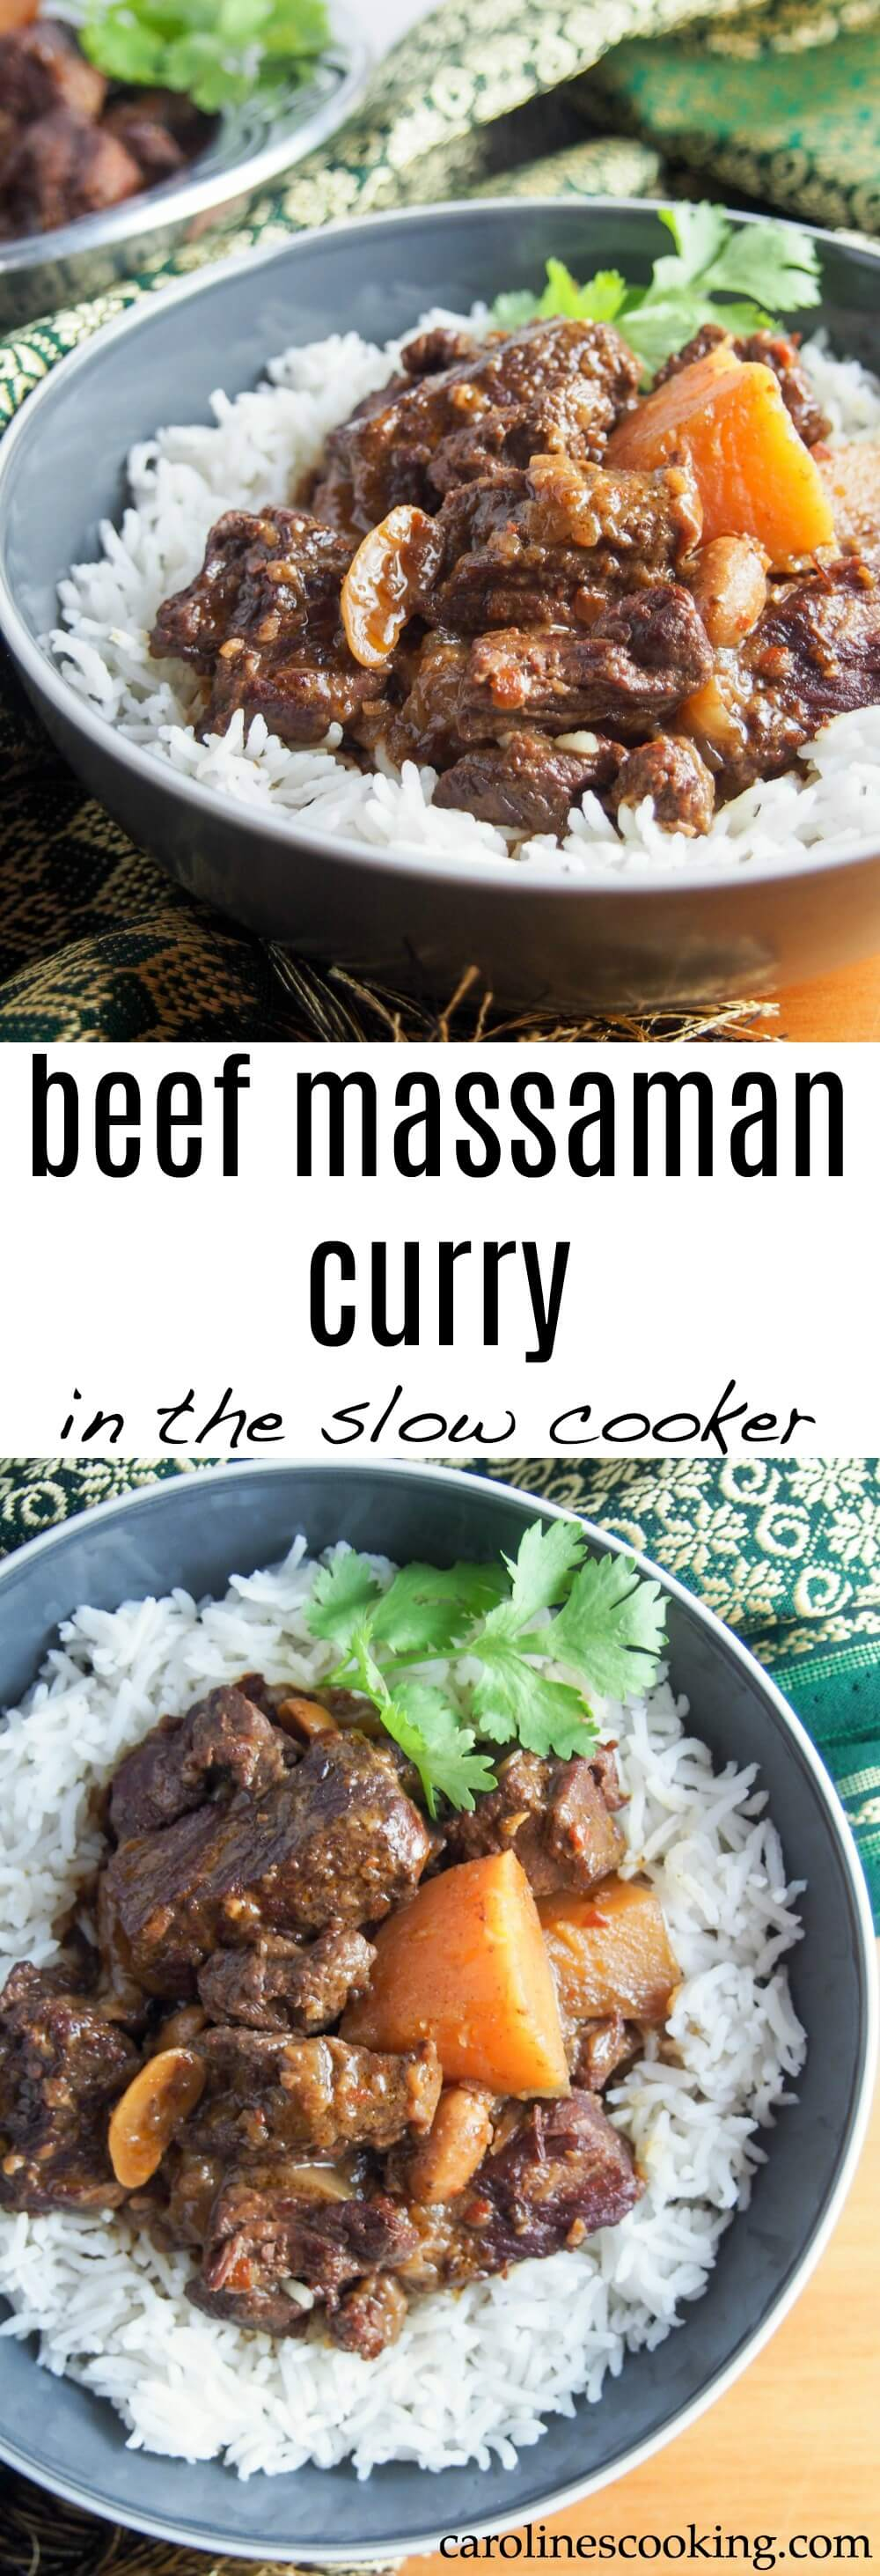 This beef massaman curry may not have the spicy heat of some other curries, but it is packed with fabulously aromatic flavors. The slow cooked beef is meltingly tender in this delicious meal. #slowcooker #beef #thaifood